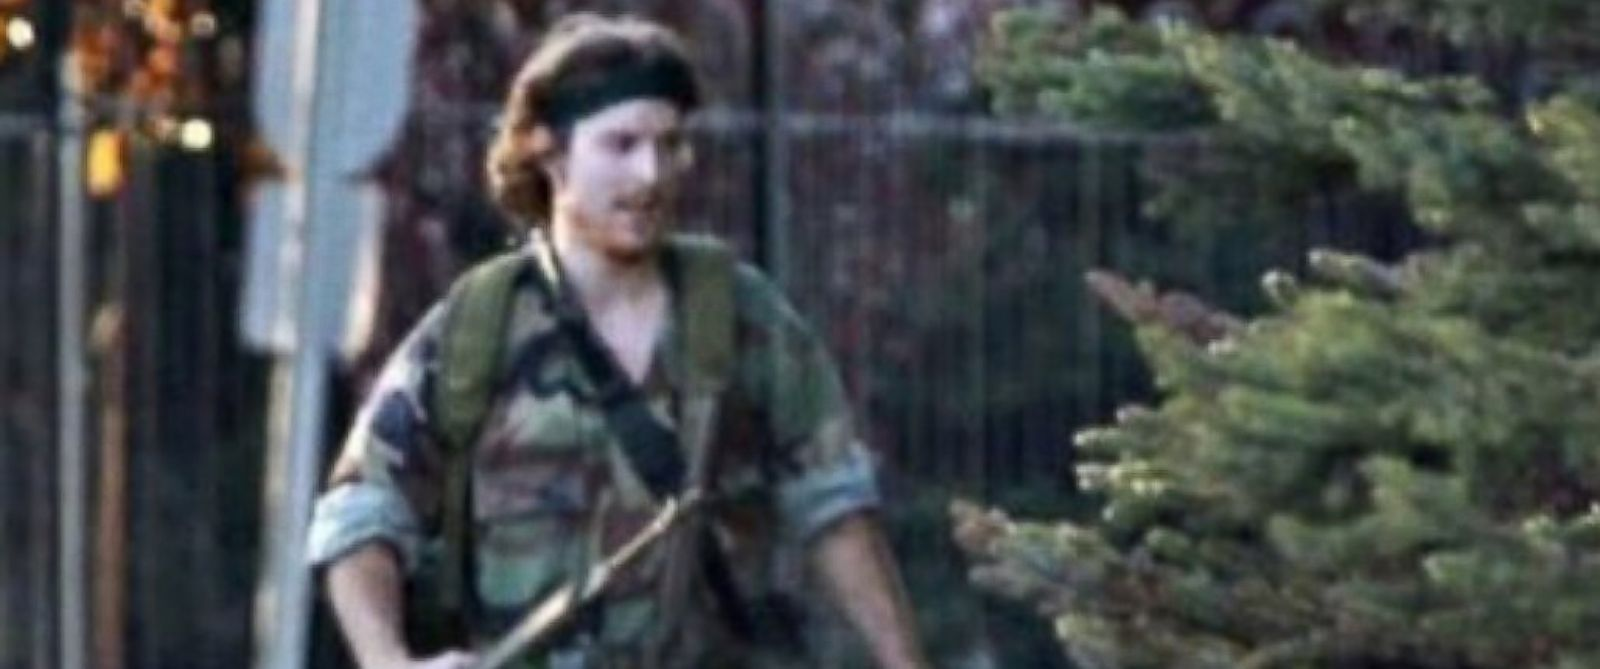 PHOTO: Authorities have identified the suspect in a fatal shooting in New Brunswick, Canada, June 4, 2014, as Justin Bourque, 24.